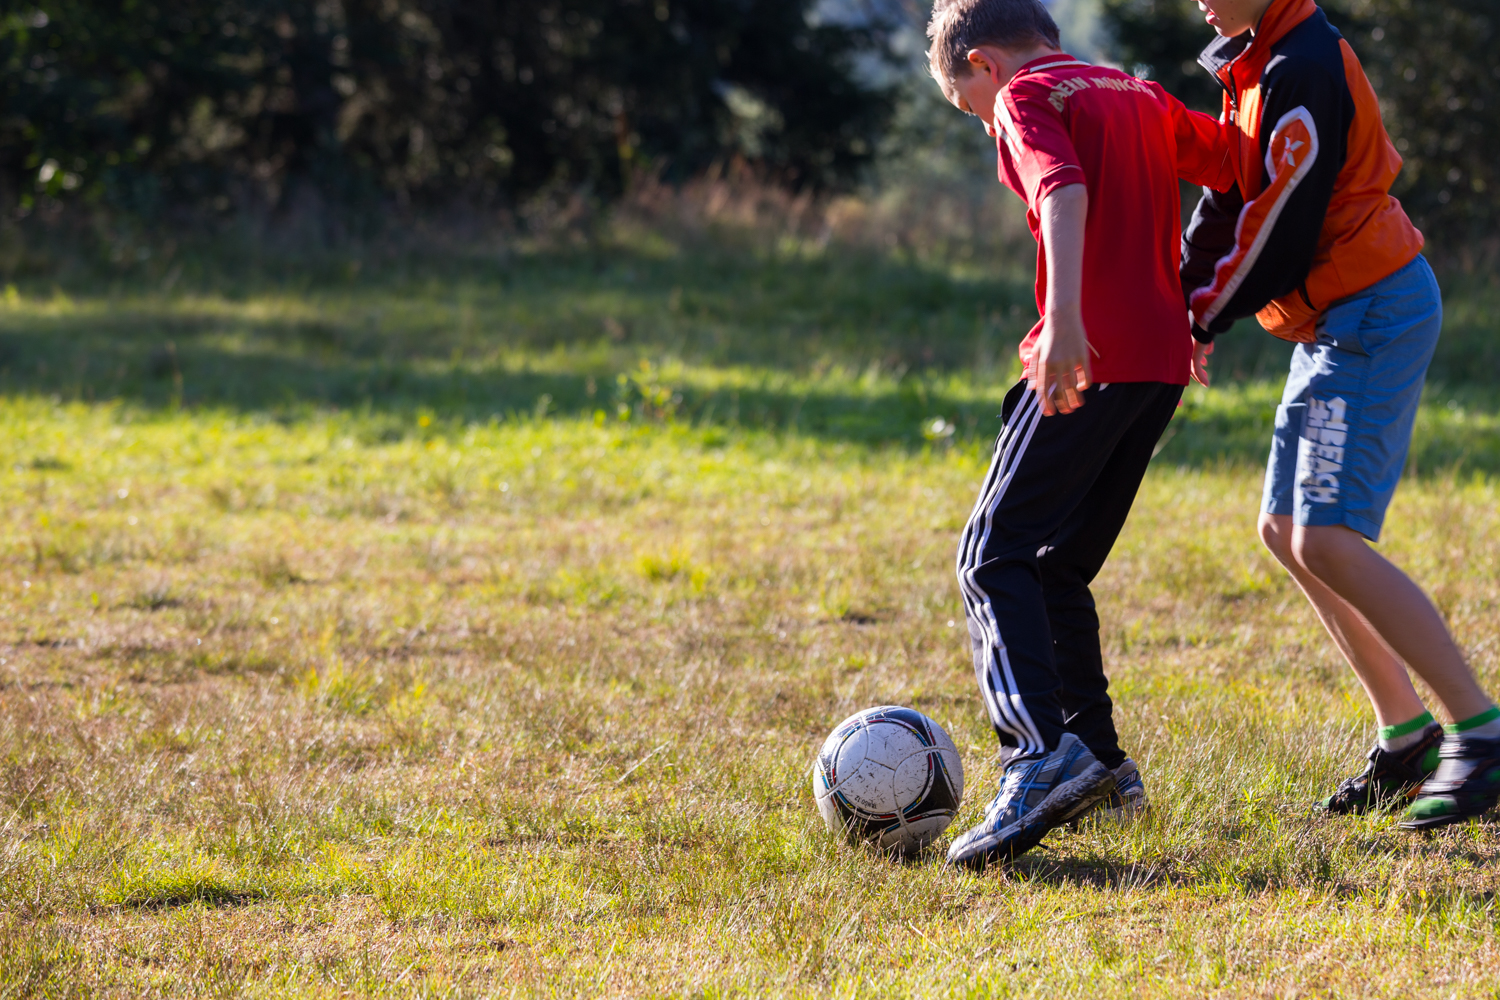 There is always time for soccer… Always!